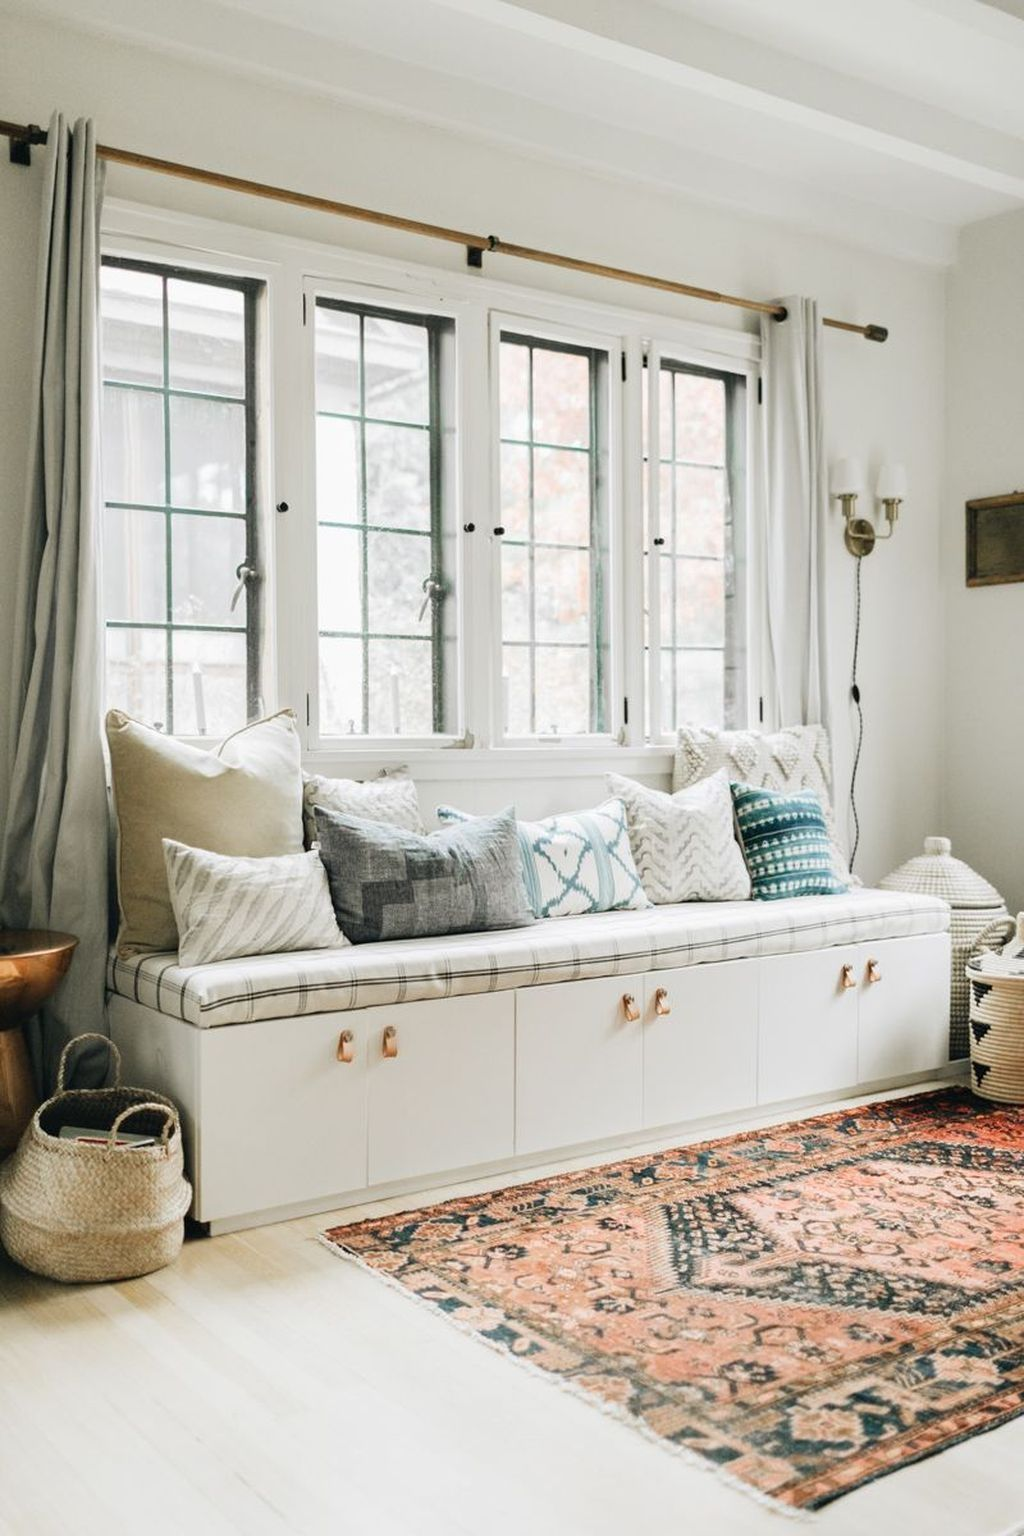 30 Astonishing Window Seat Designs That Are Must Have In Your Dream Home Trendhmdcr Storage Bench Designs Living Room Bench Bedroom Seating #sitting #bench #living #room